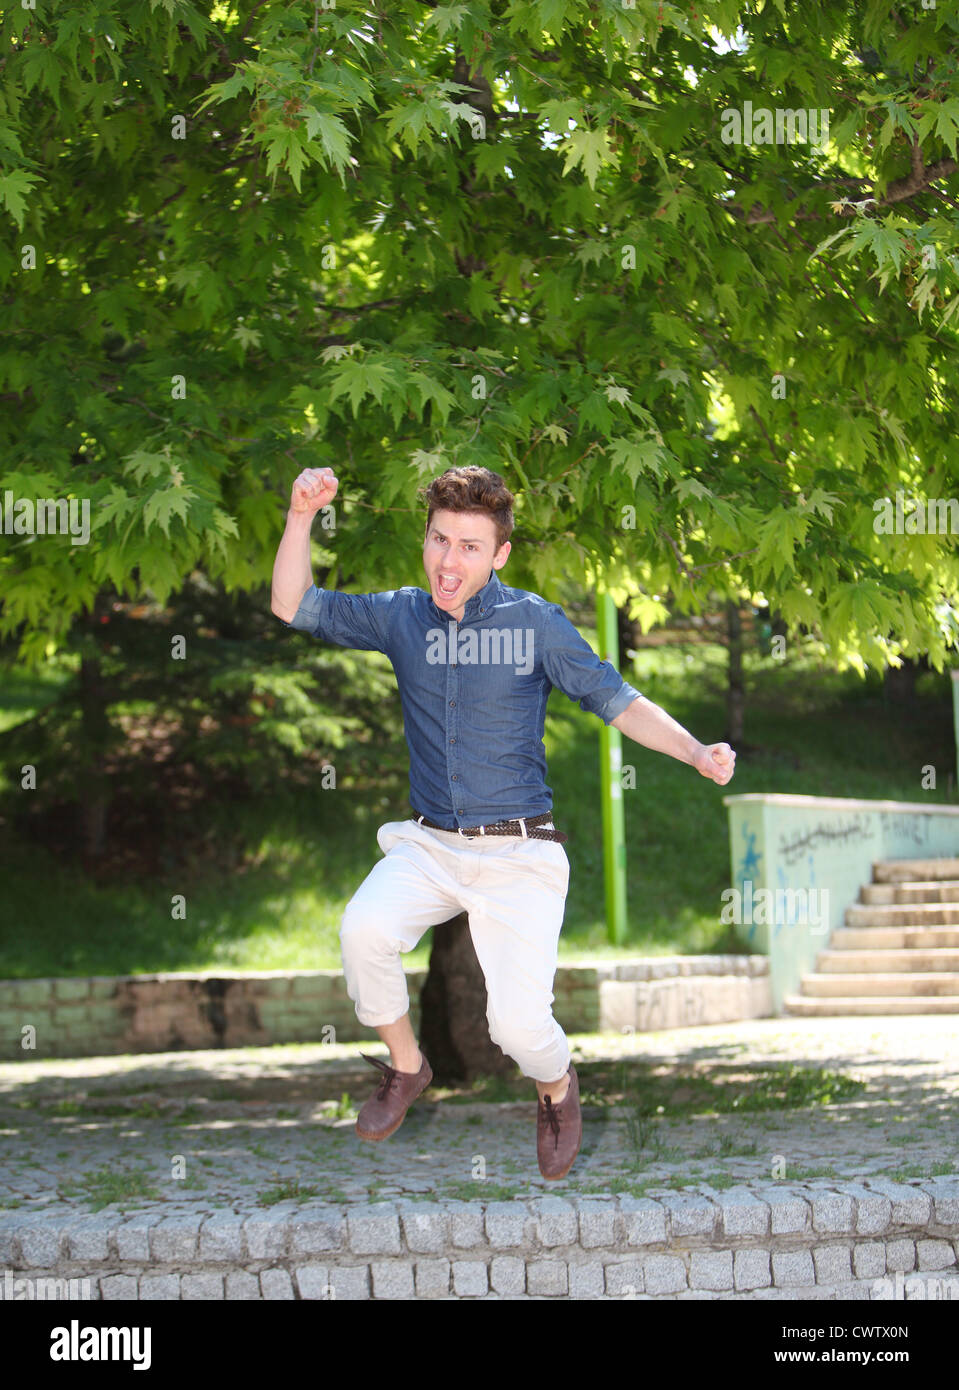 Jumping and happy red hair russian man - Stock Image